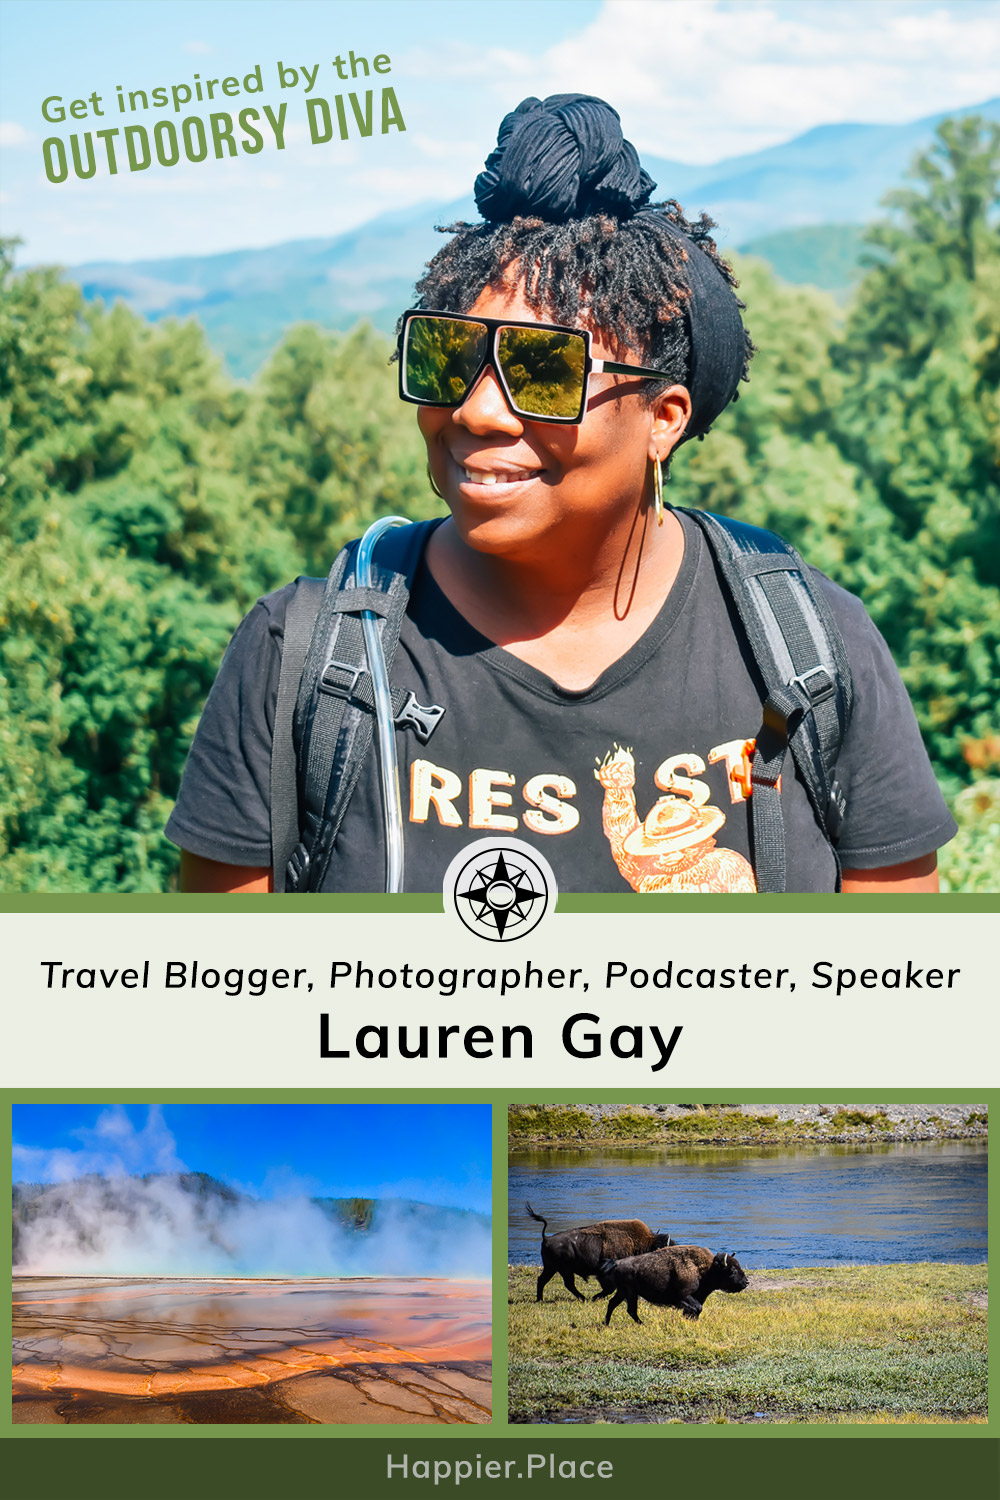 Lauren Gay: Travel Blogger, Photographer, Podcaster, and Speaker (Tampa, Florida)